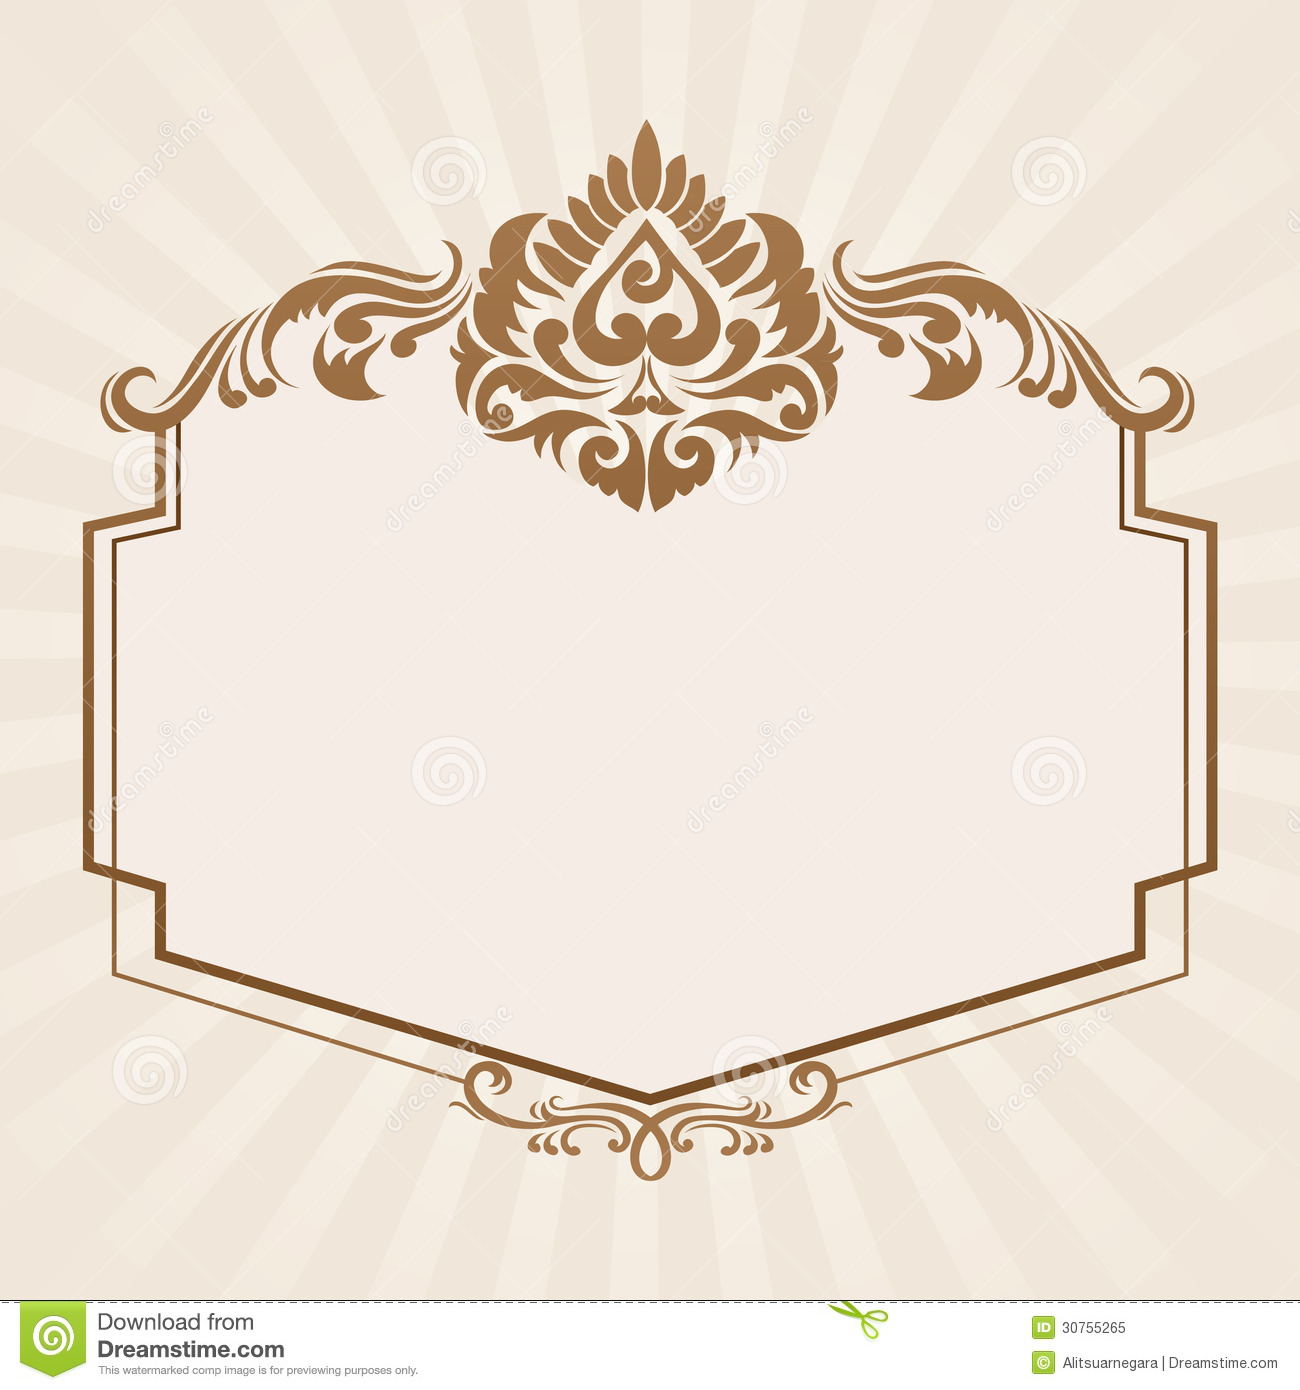 spades ornament frame royalty free stock photo image vector graphics free online vector graphics free download